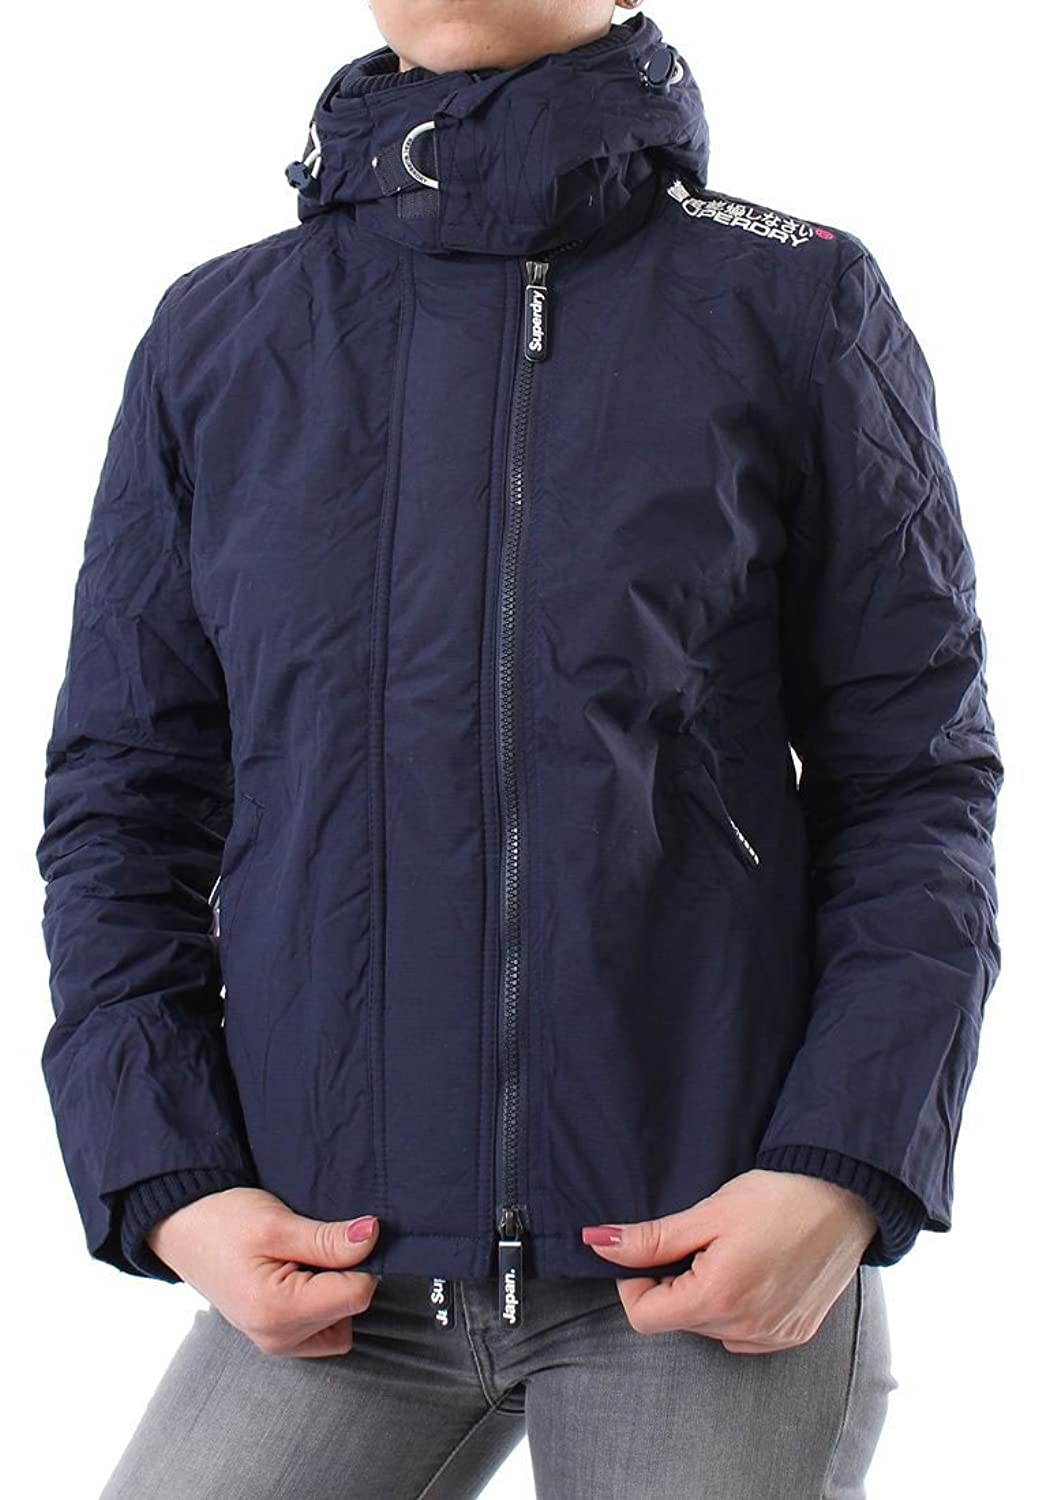 Superdry Windbreaker Women - HOODED SHERPA - Nautical Navy-Cream